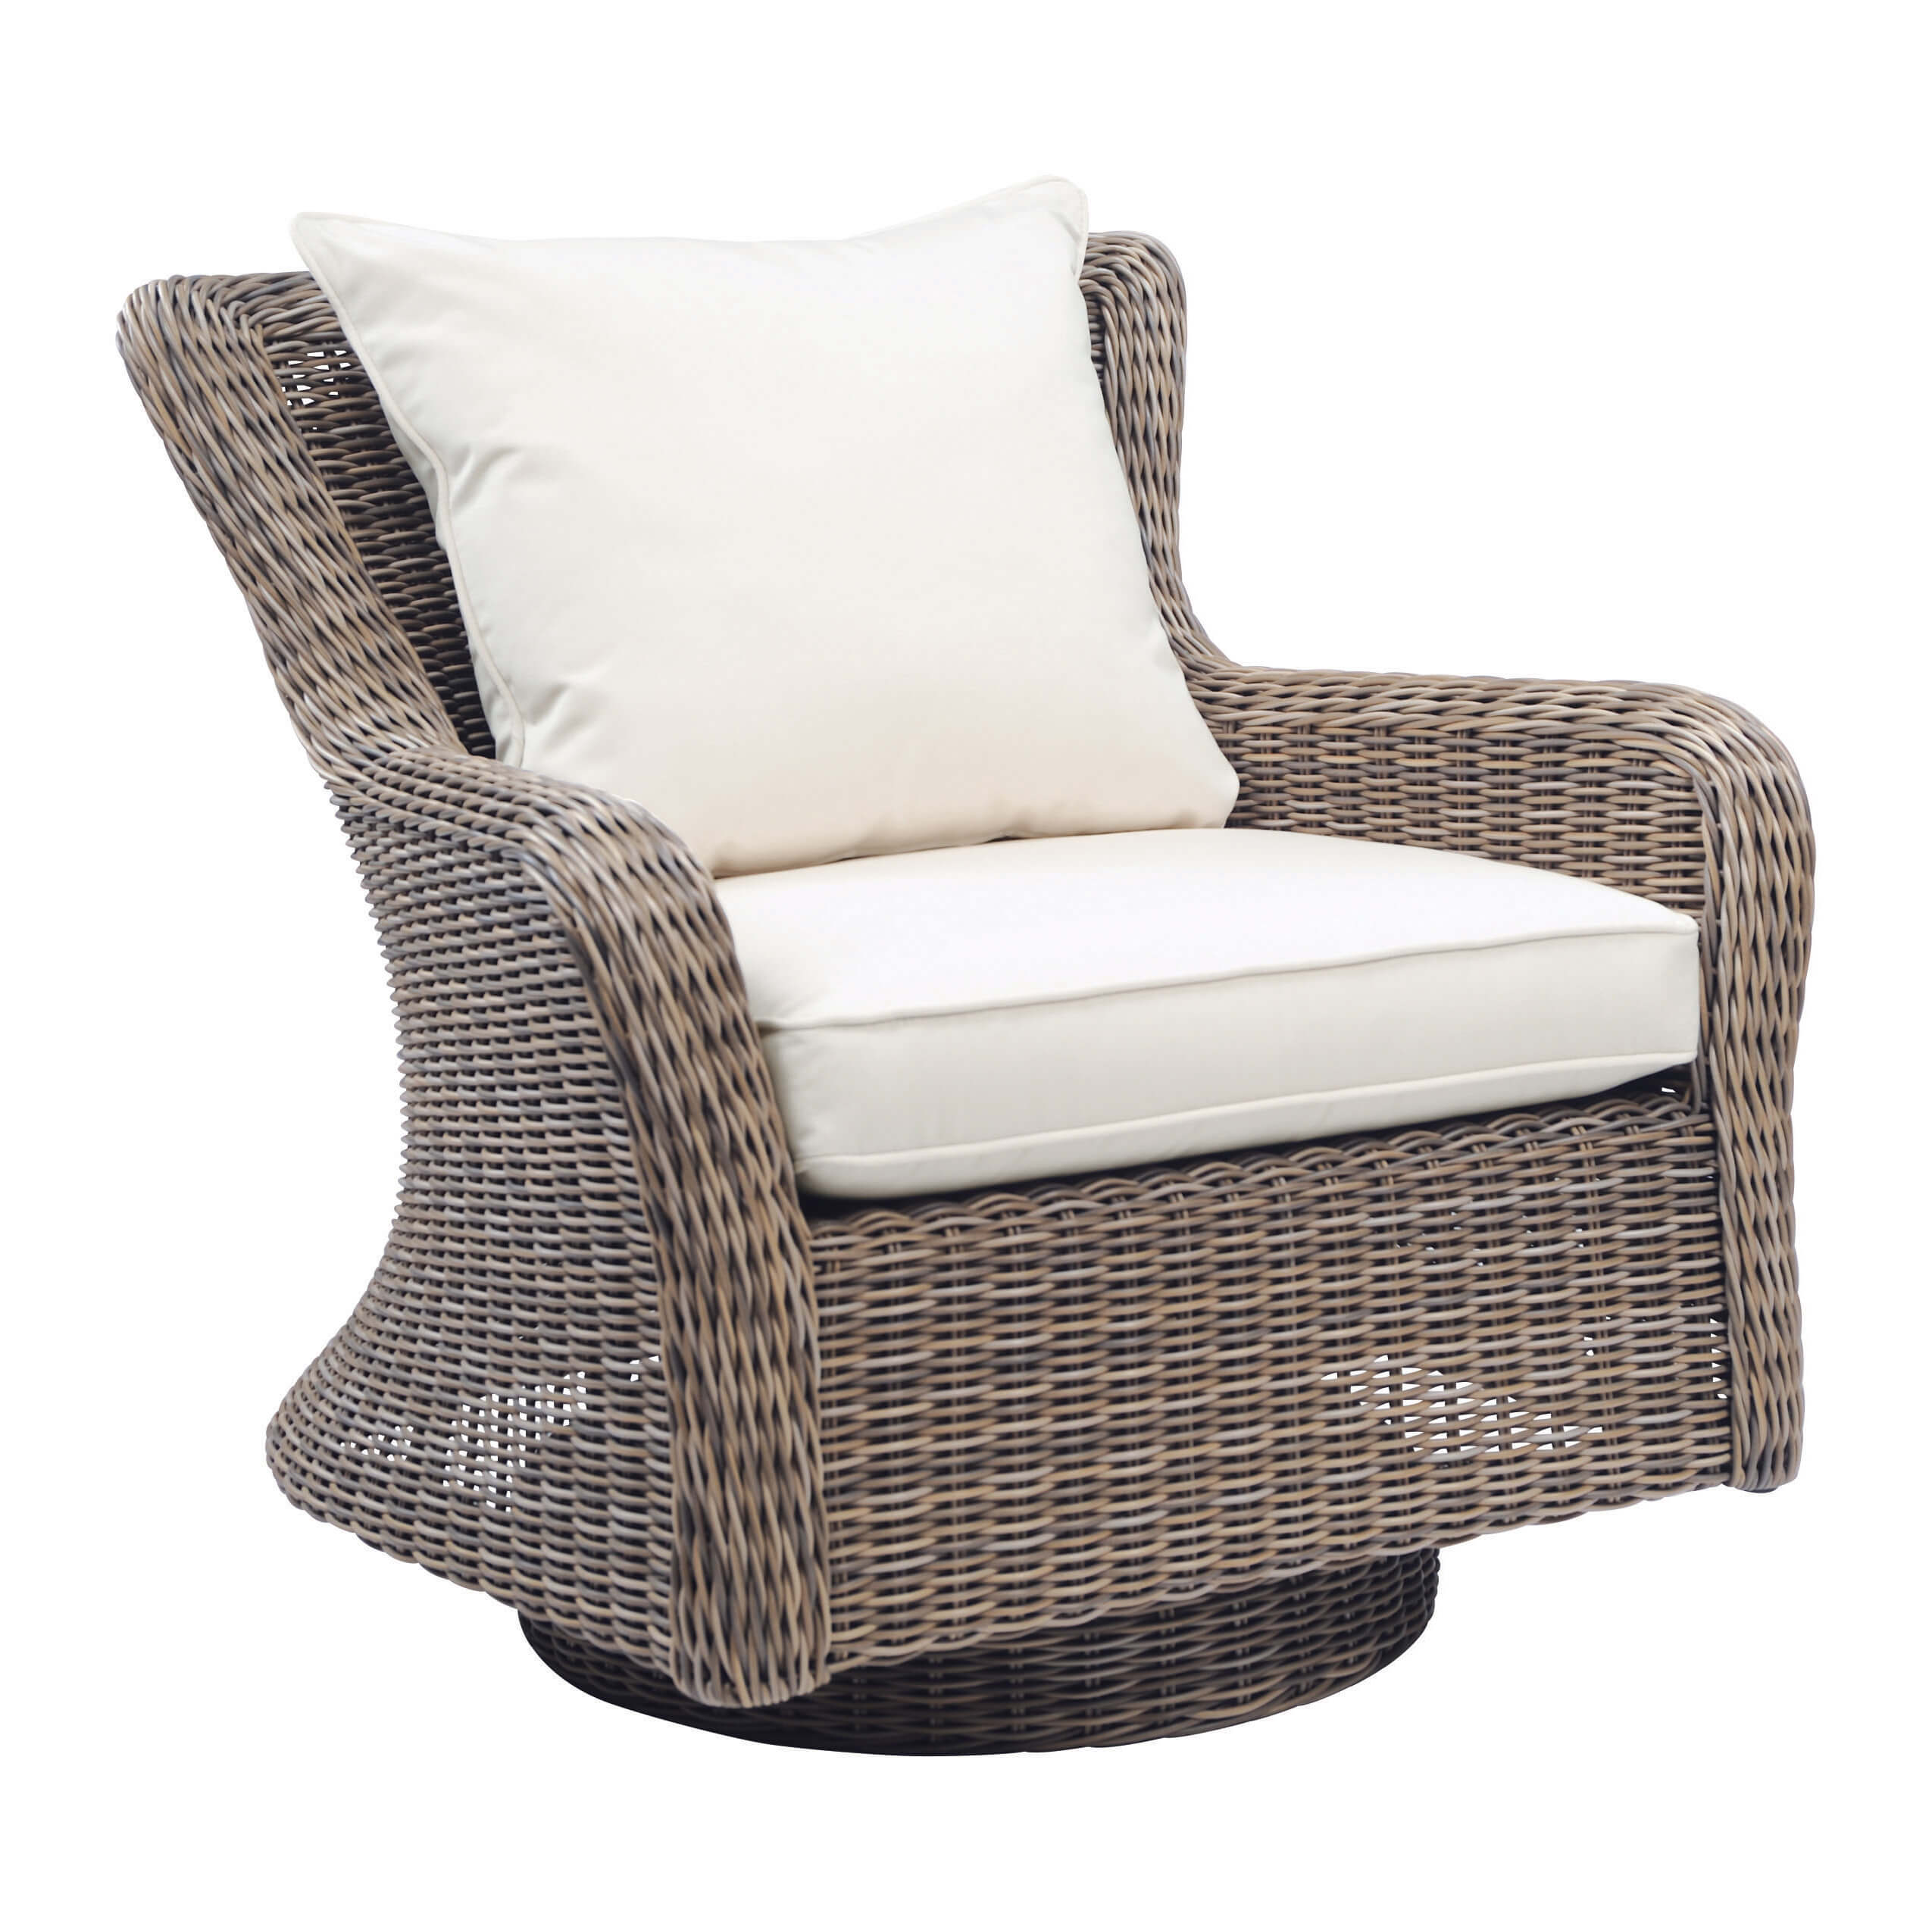 Sag Harbor Deep Seating Swivel Rocker Lounge Chair